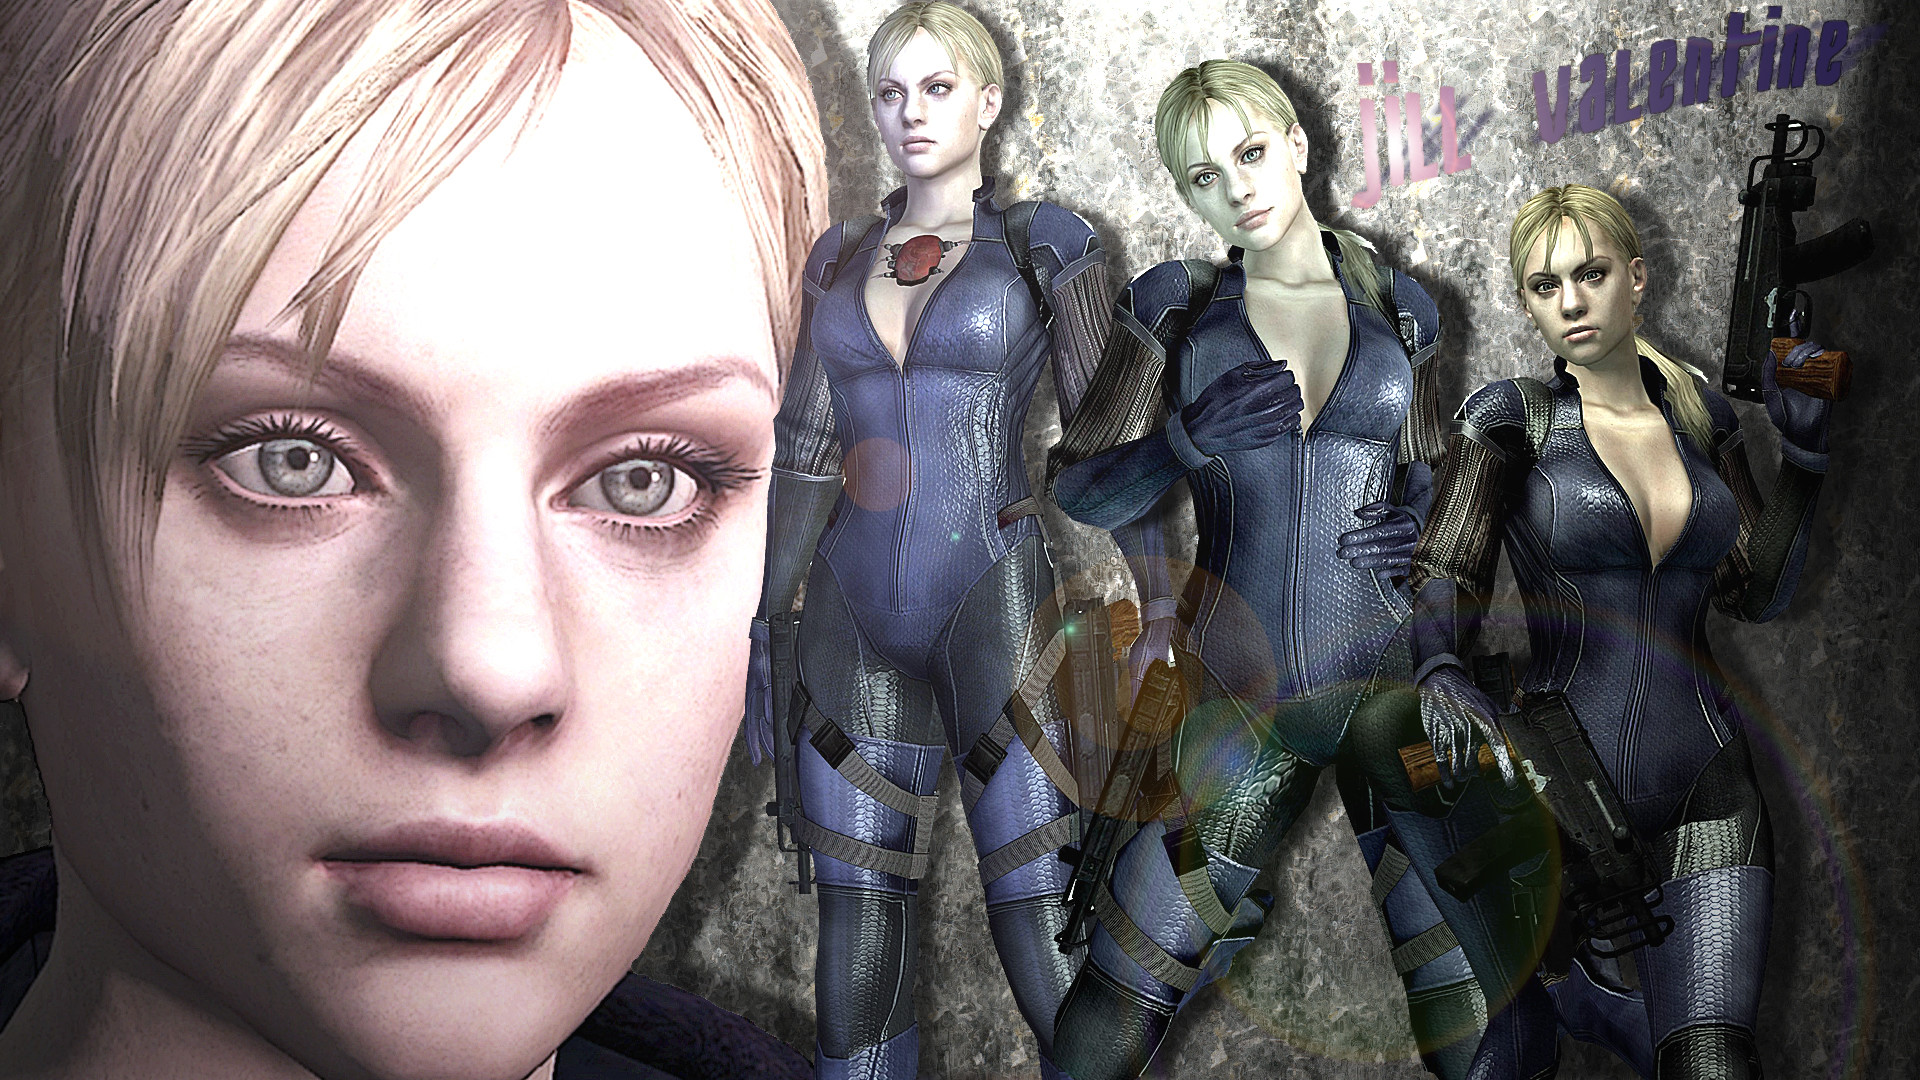 Jill is this game looks better than any other! – Resident Evil: Revelations  Message Board for PlayStation 3 – Page 5 – GameFAQs